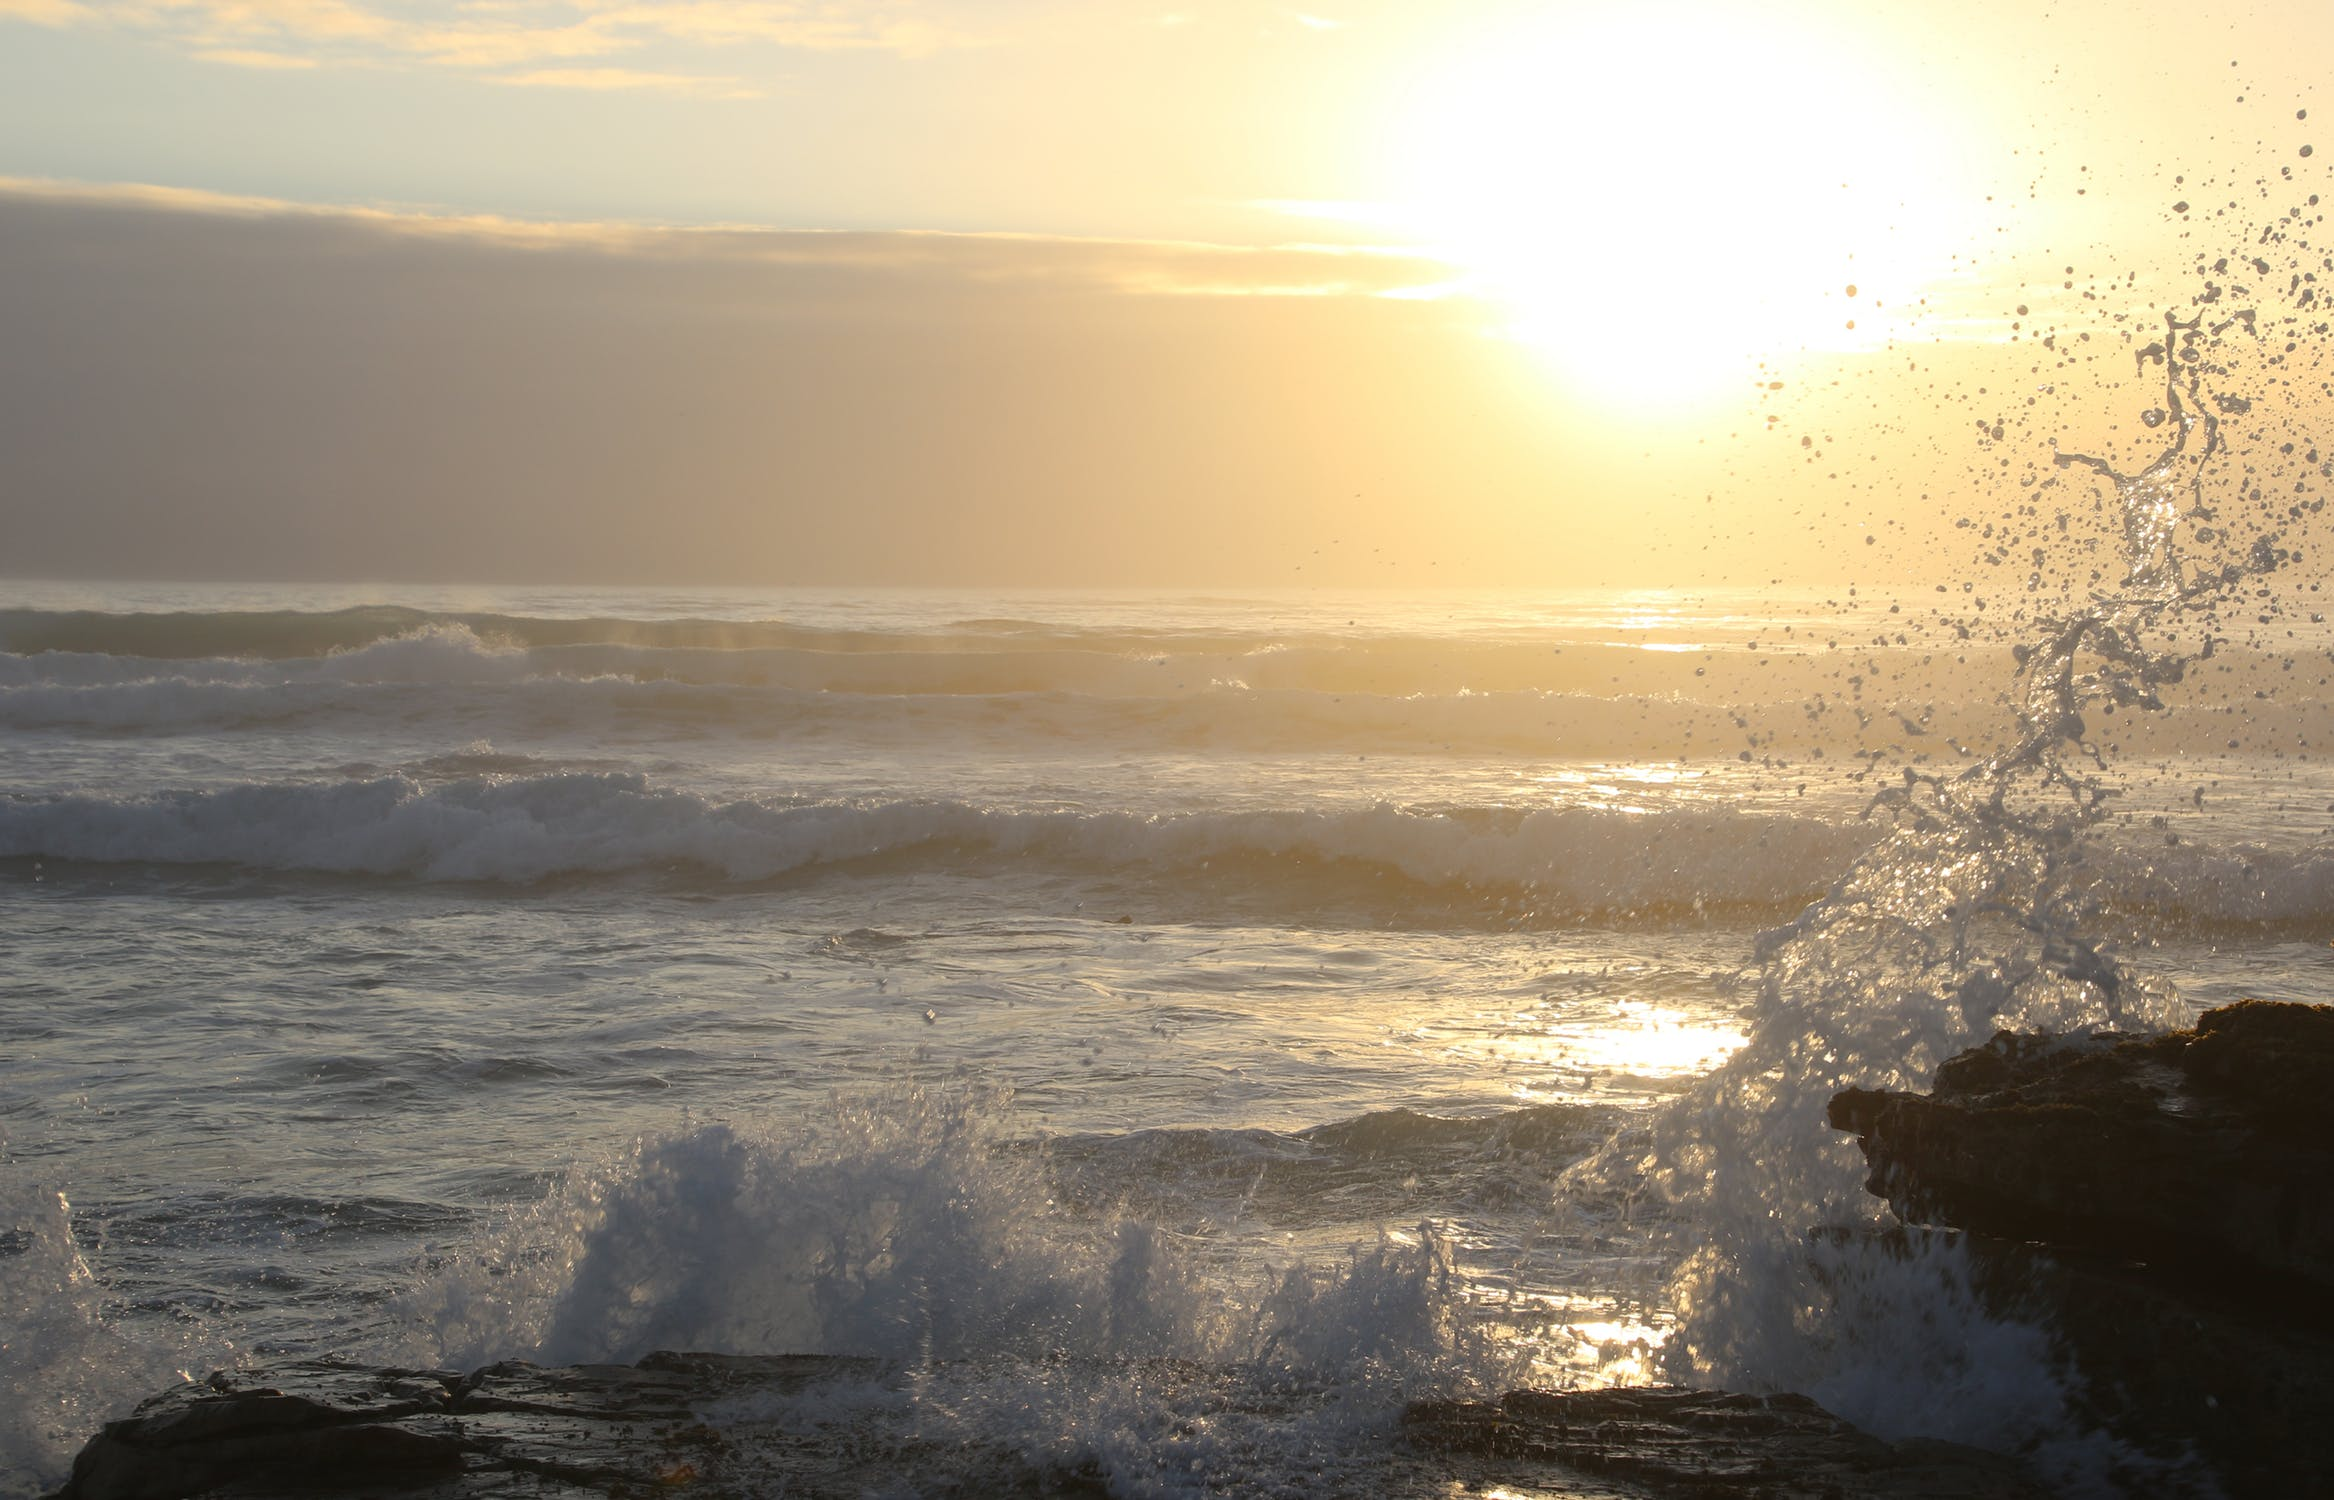 Cold sea splash photo